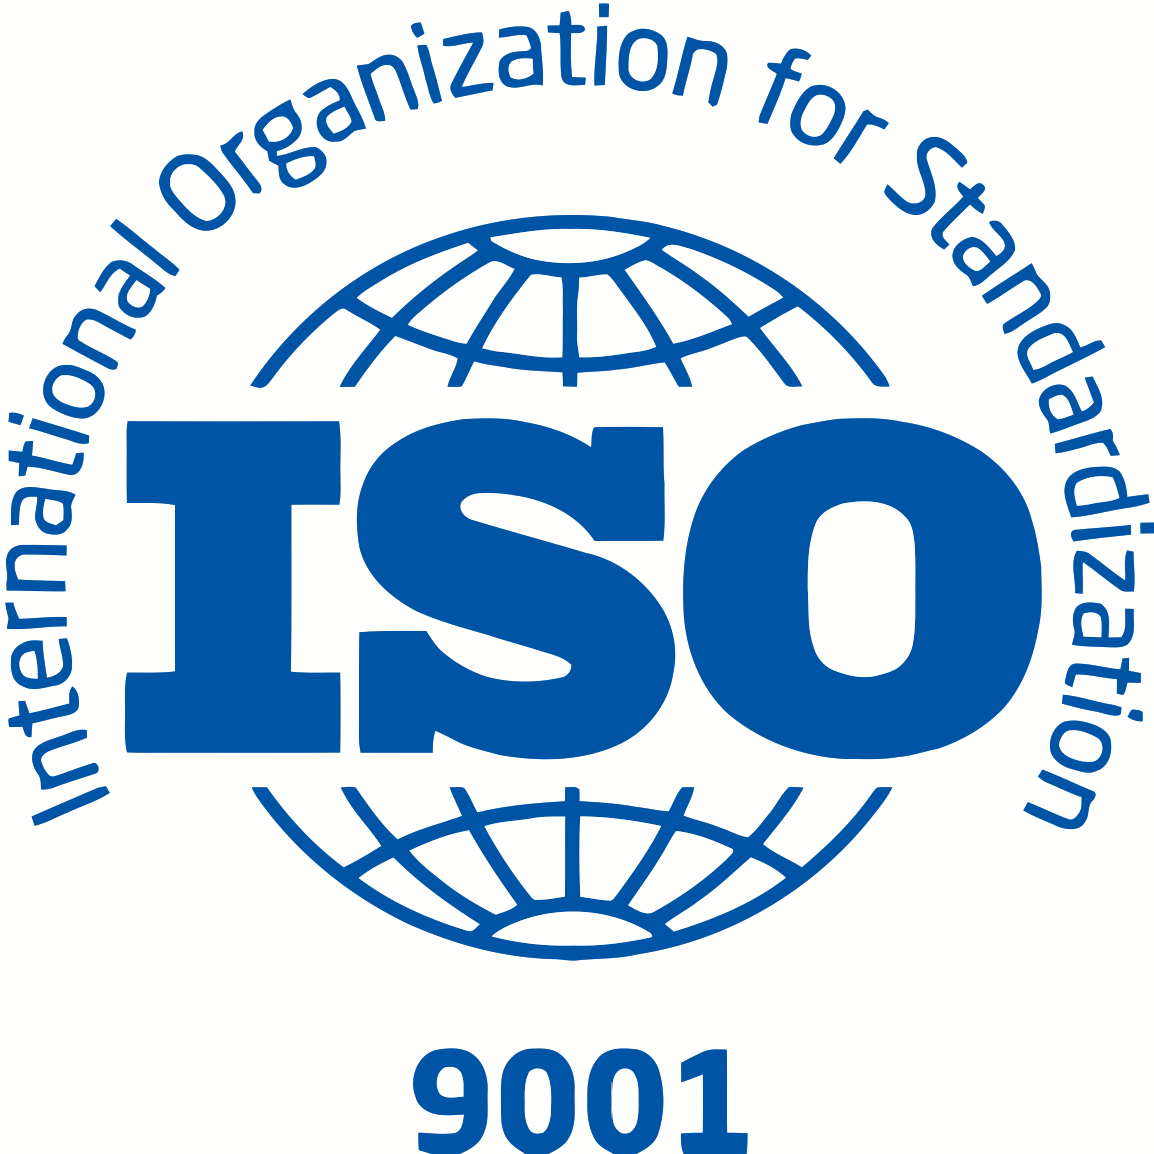 DEKING Screw Products Is AS91000 and ISO 9001:2008 Certified!